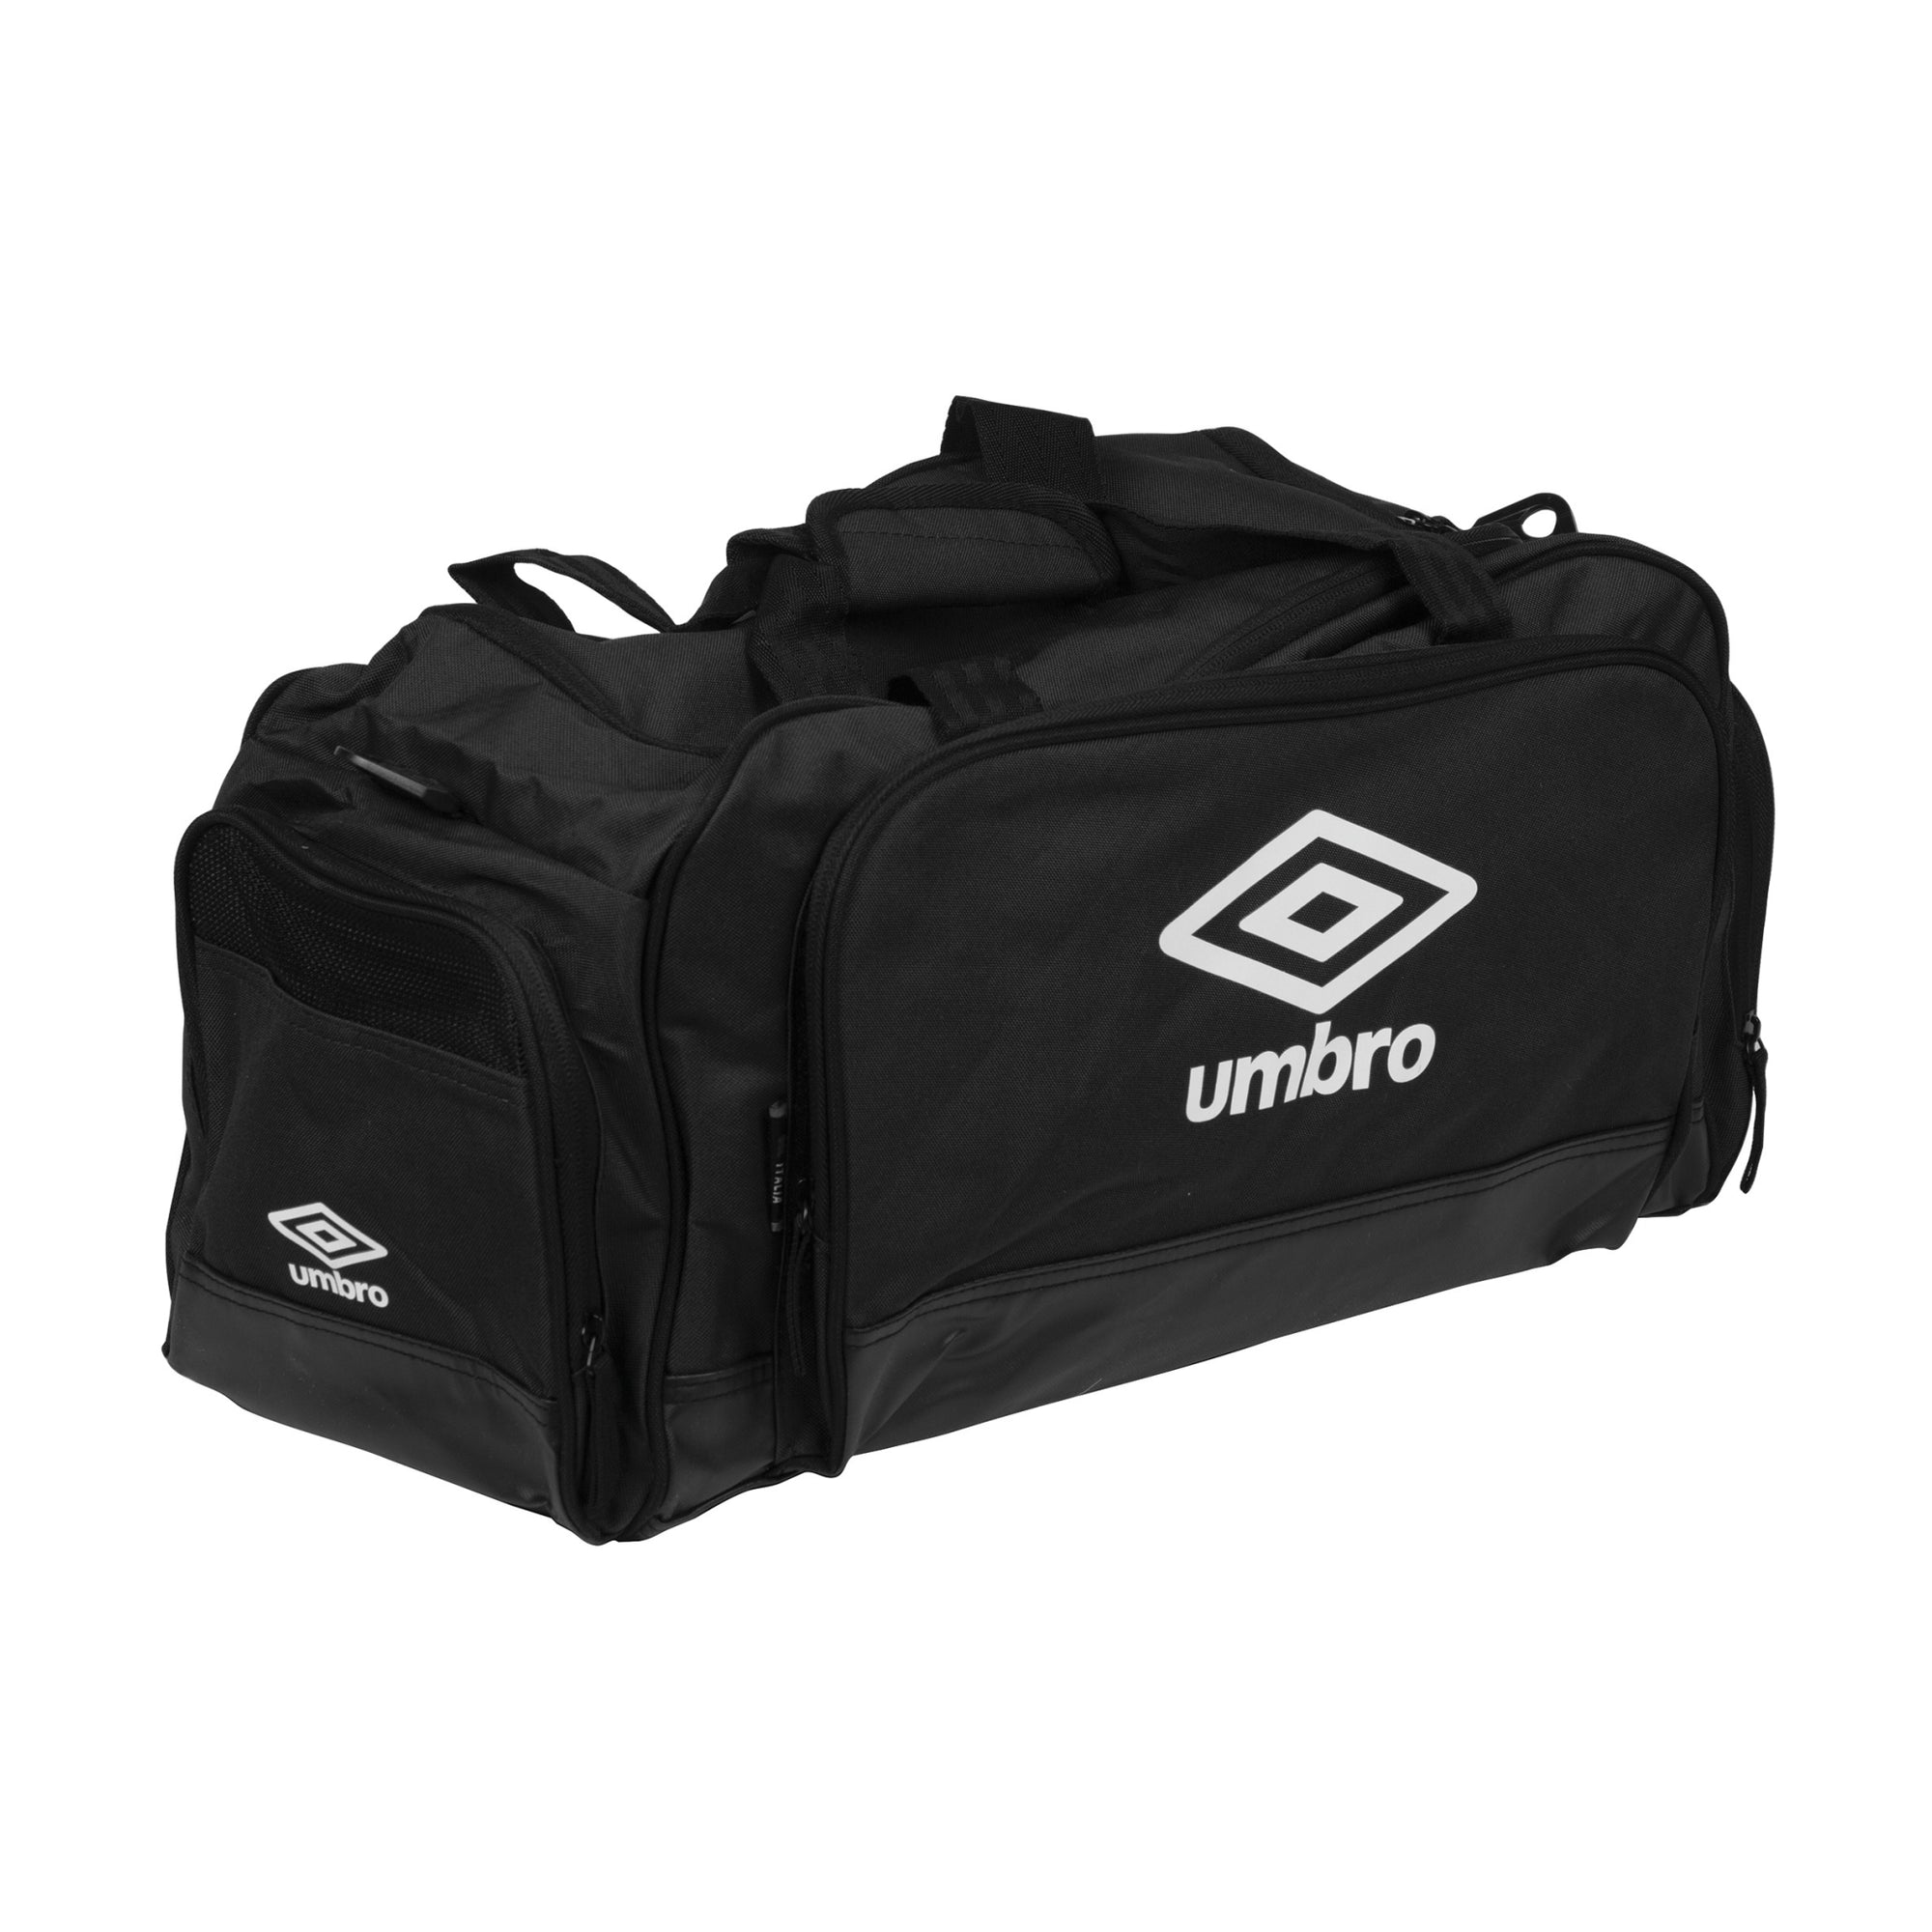 Umbro Medium Holdall - Black/White